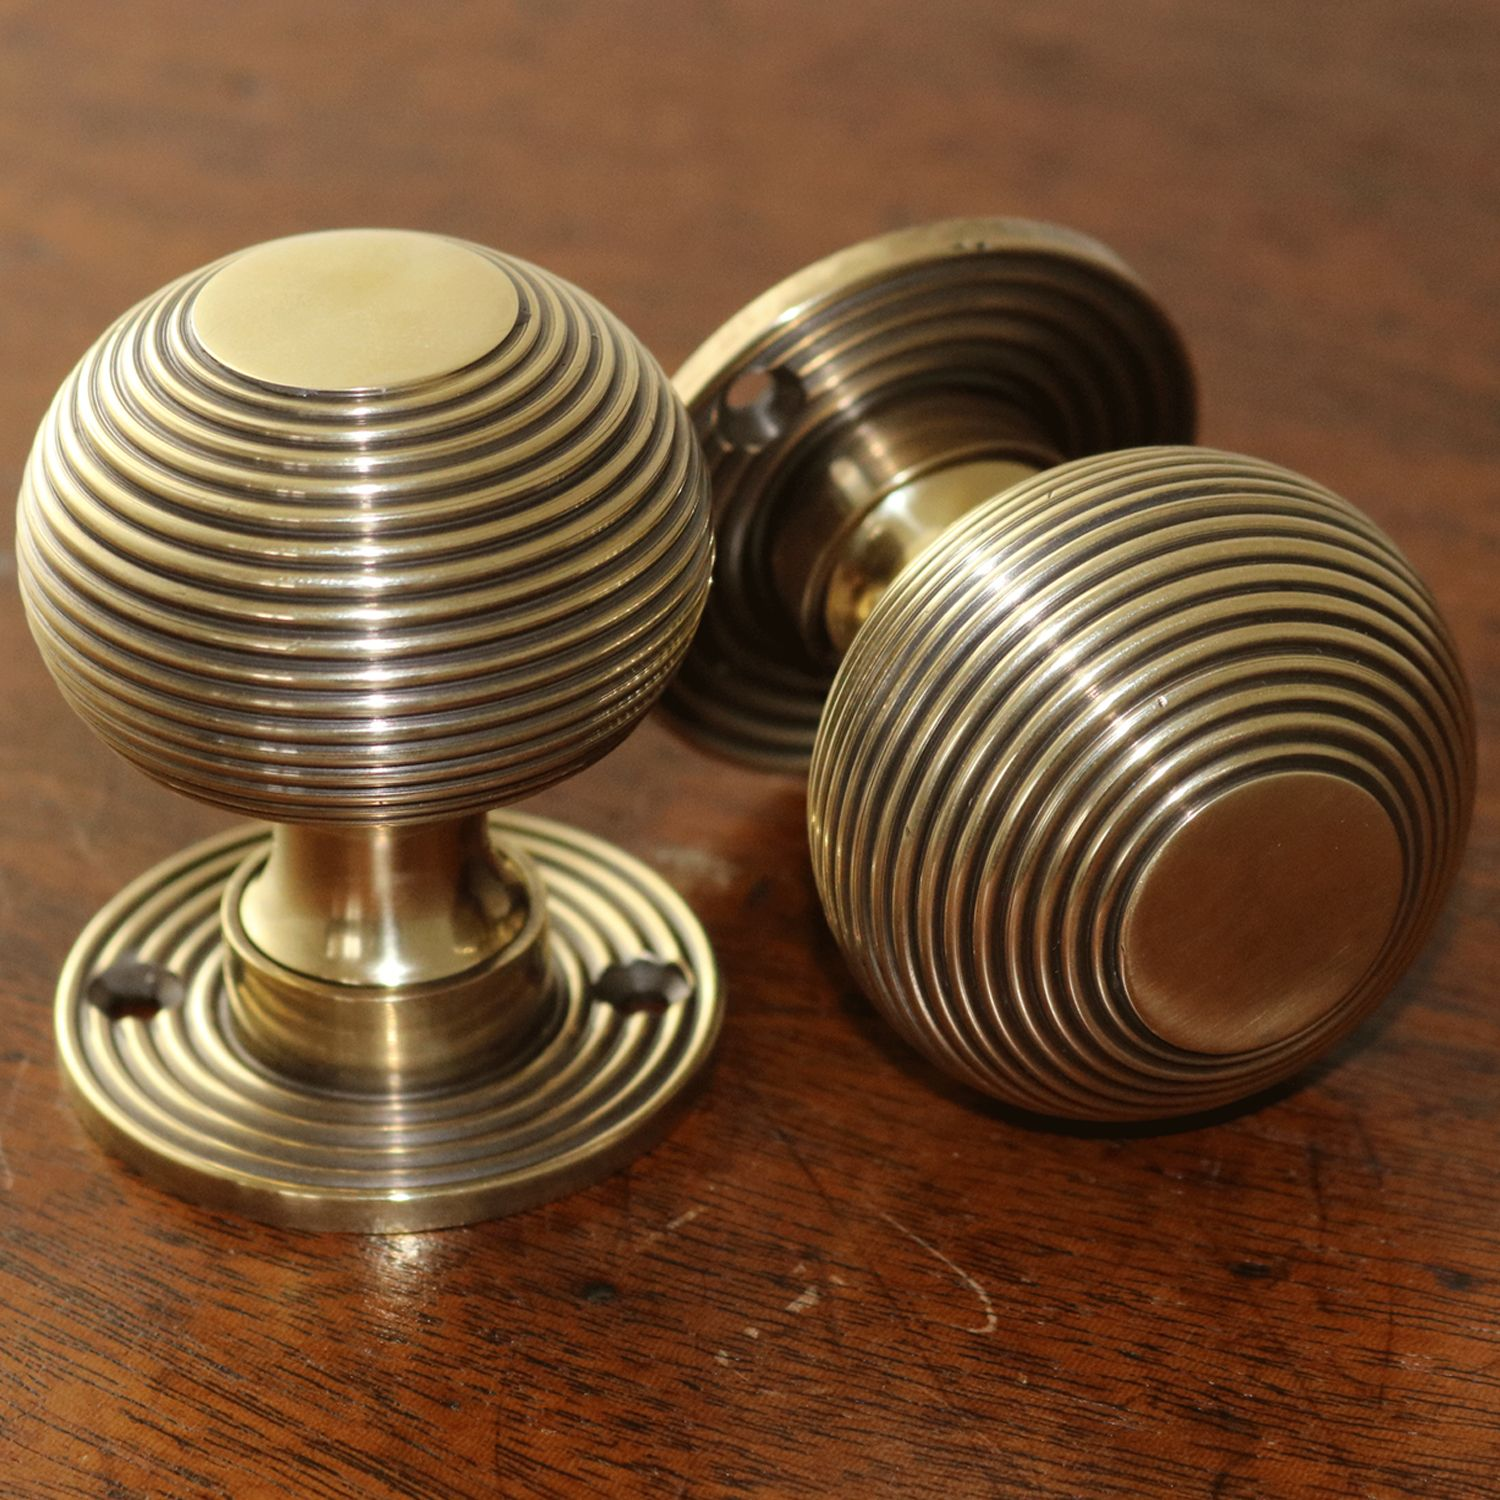 Brass Beehive Door Knobs, Turned From A Solid Brass Bar And Then Gently  Aged   This Classic Period Design Has Been Beautifully And Faithfully  Reproduced